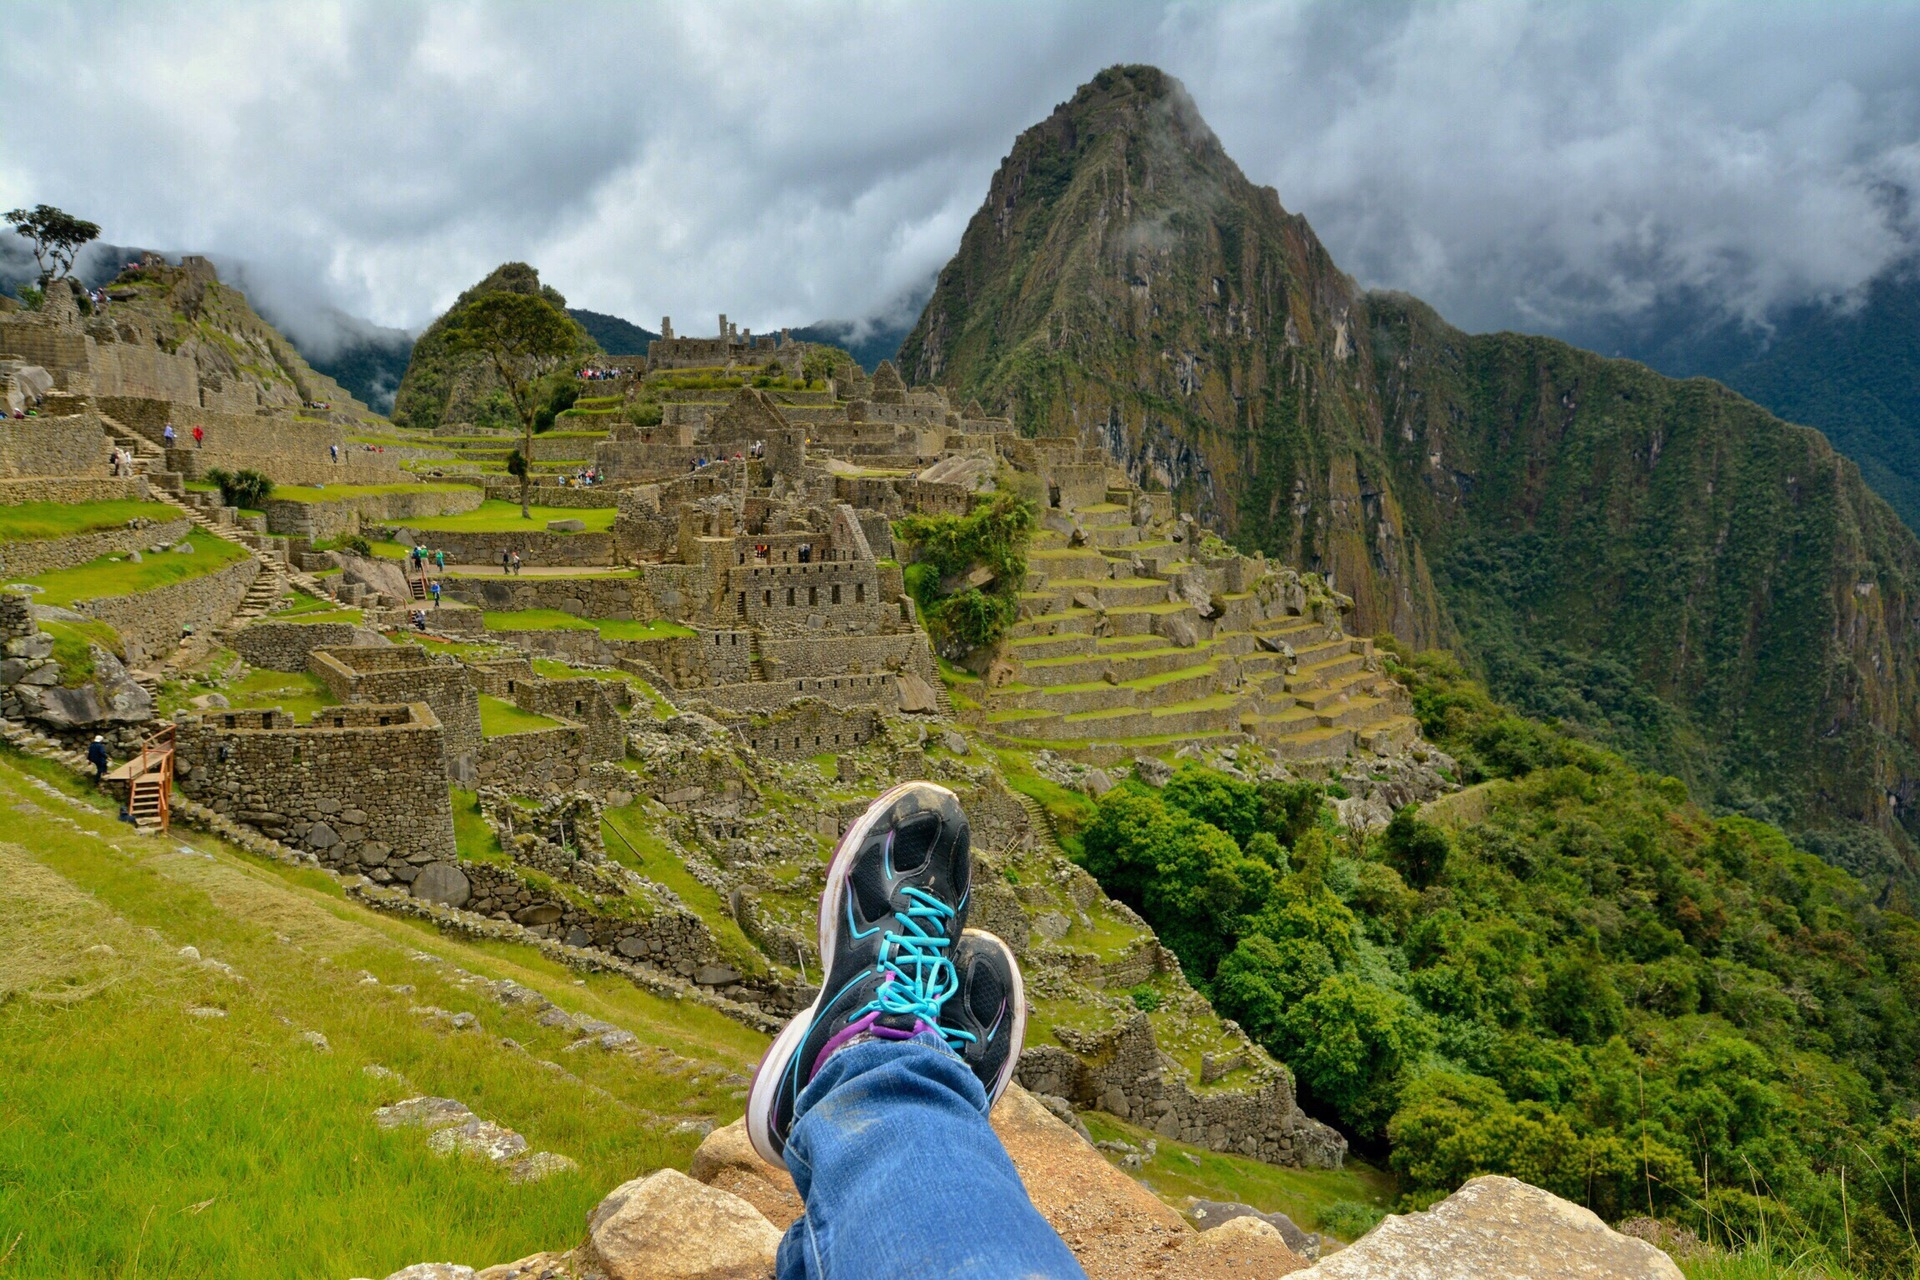 Hiking in Machu Picchu | Machu Picchu, Peru, ancient civilisations, Architecture